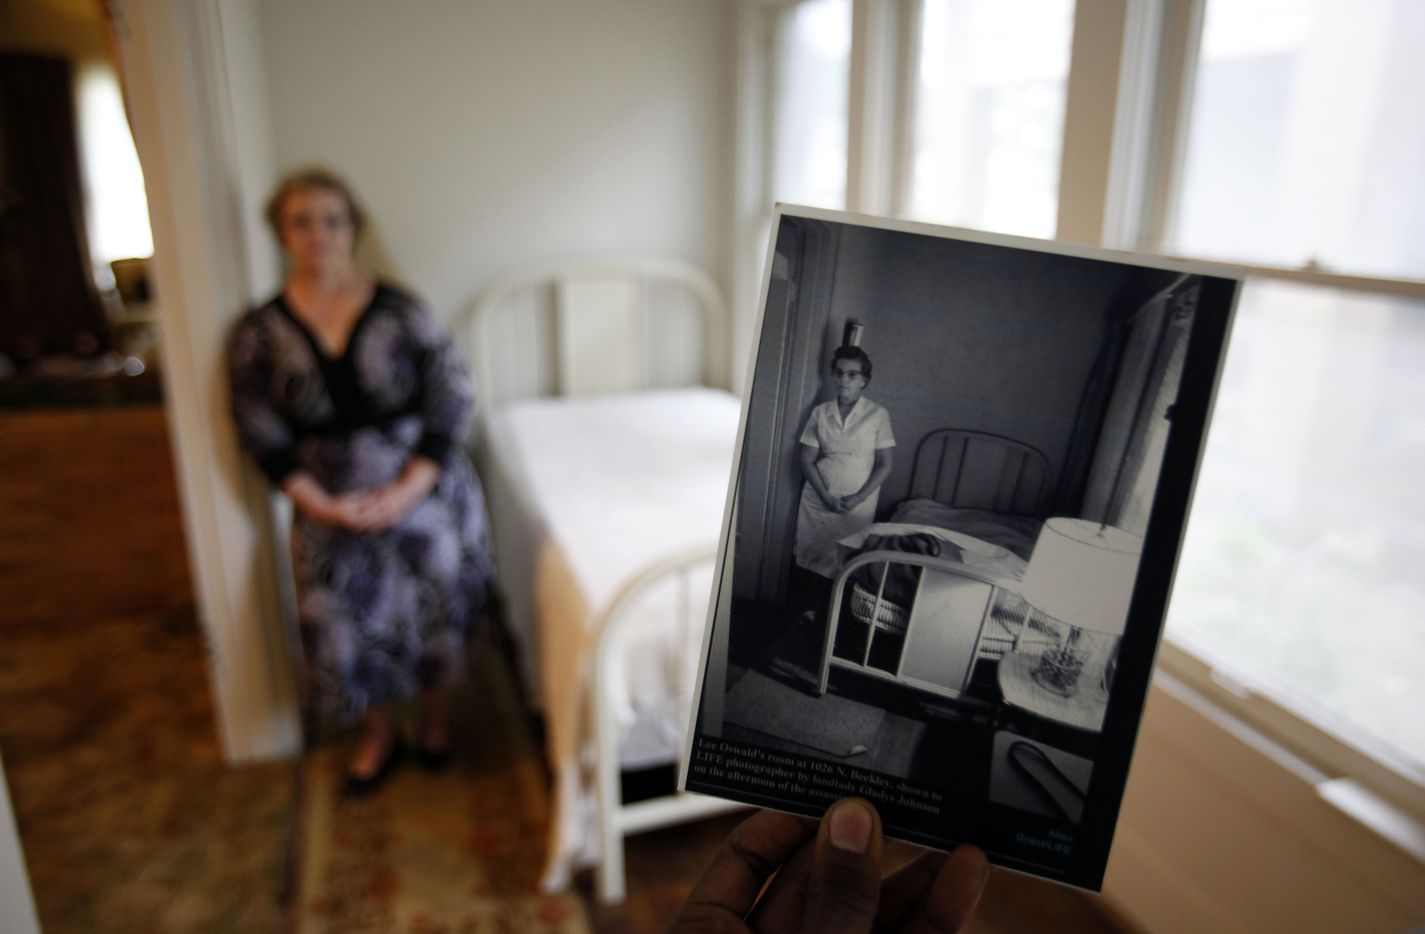 In the foreground is a photo of Pat Hall's grandmother, Gladys Johnson, taken by LIFE photographer Allan Grant the day of the assassination of Pres. John F. Kennedy. In 2013, Pat Hall stood next to the same bed in the same room at her house on N. Beckley Ave as the Dallas Morning News took her photo.